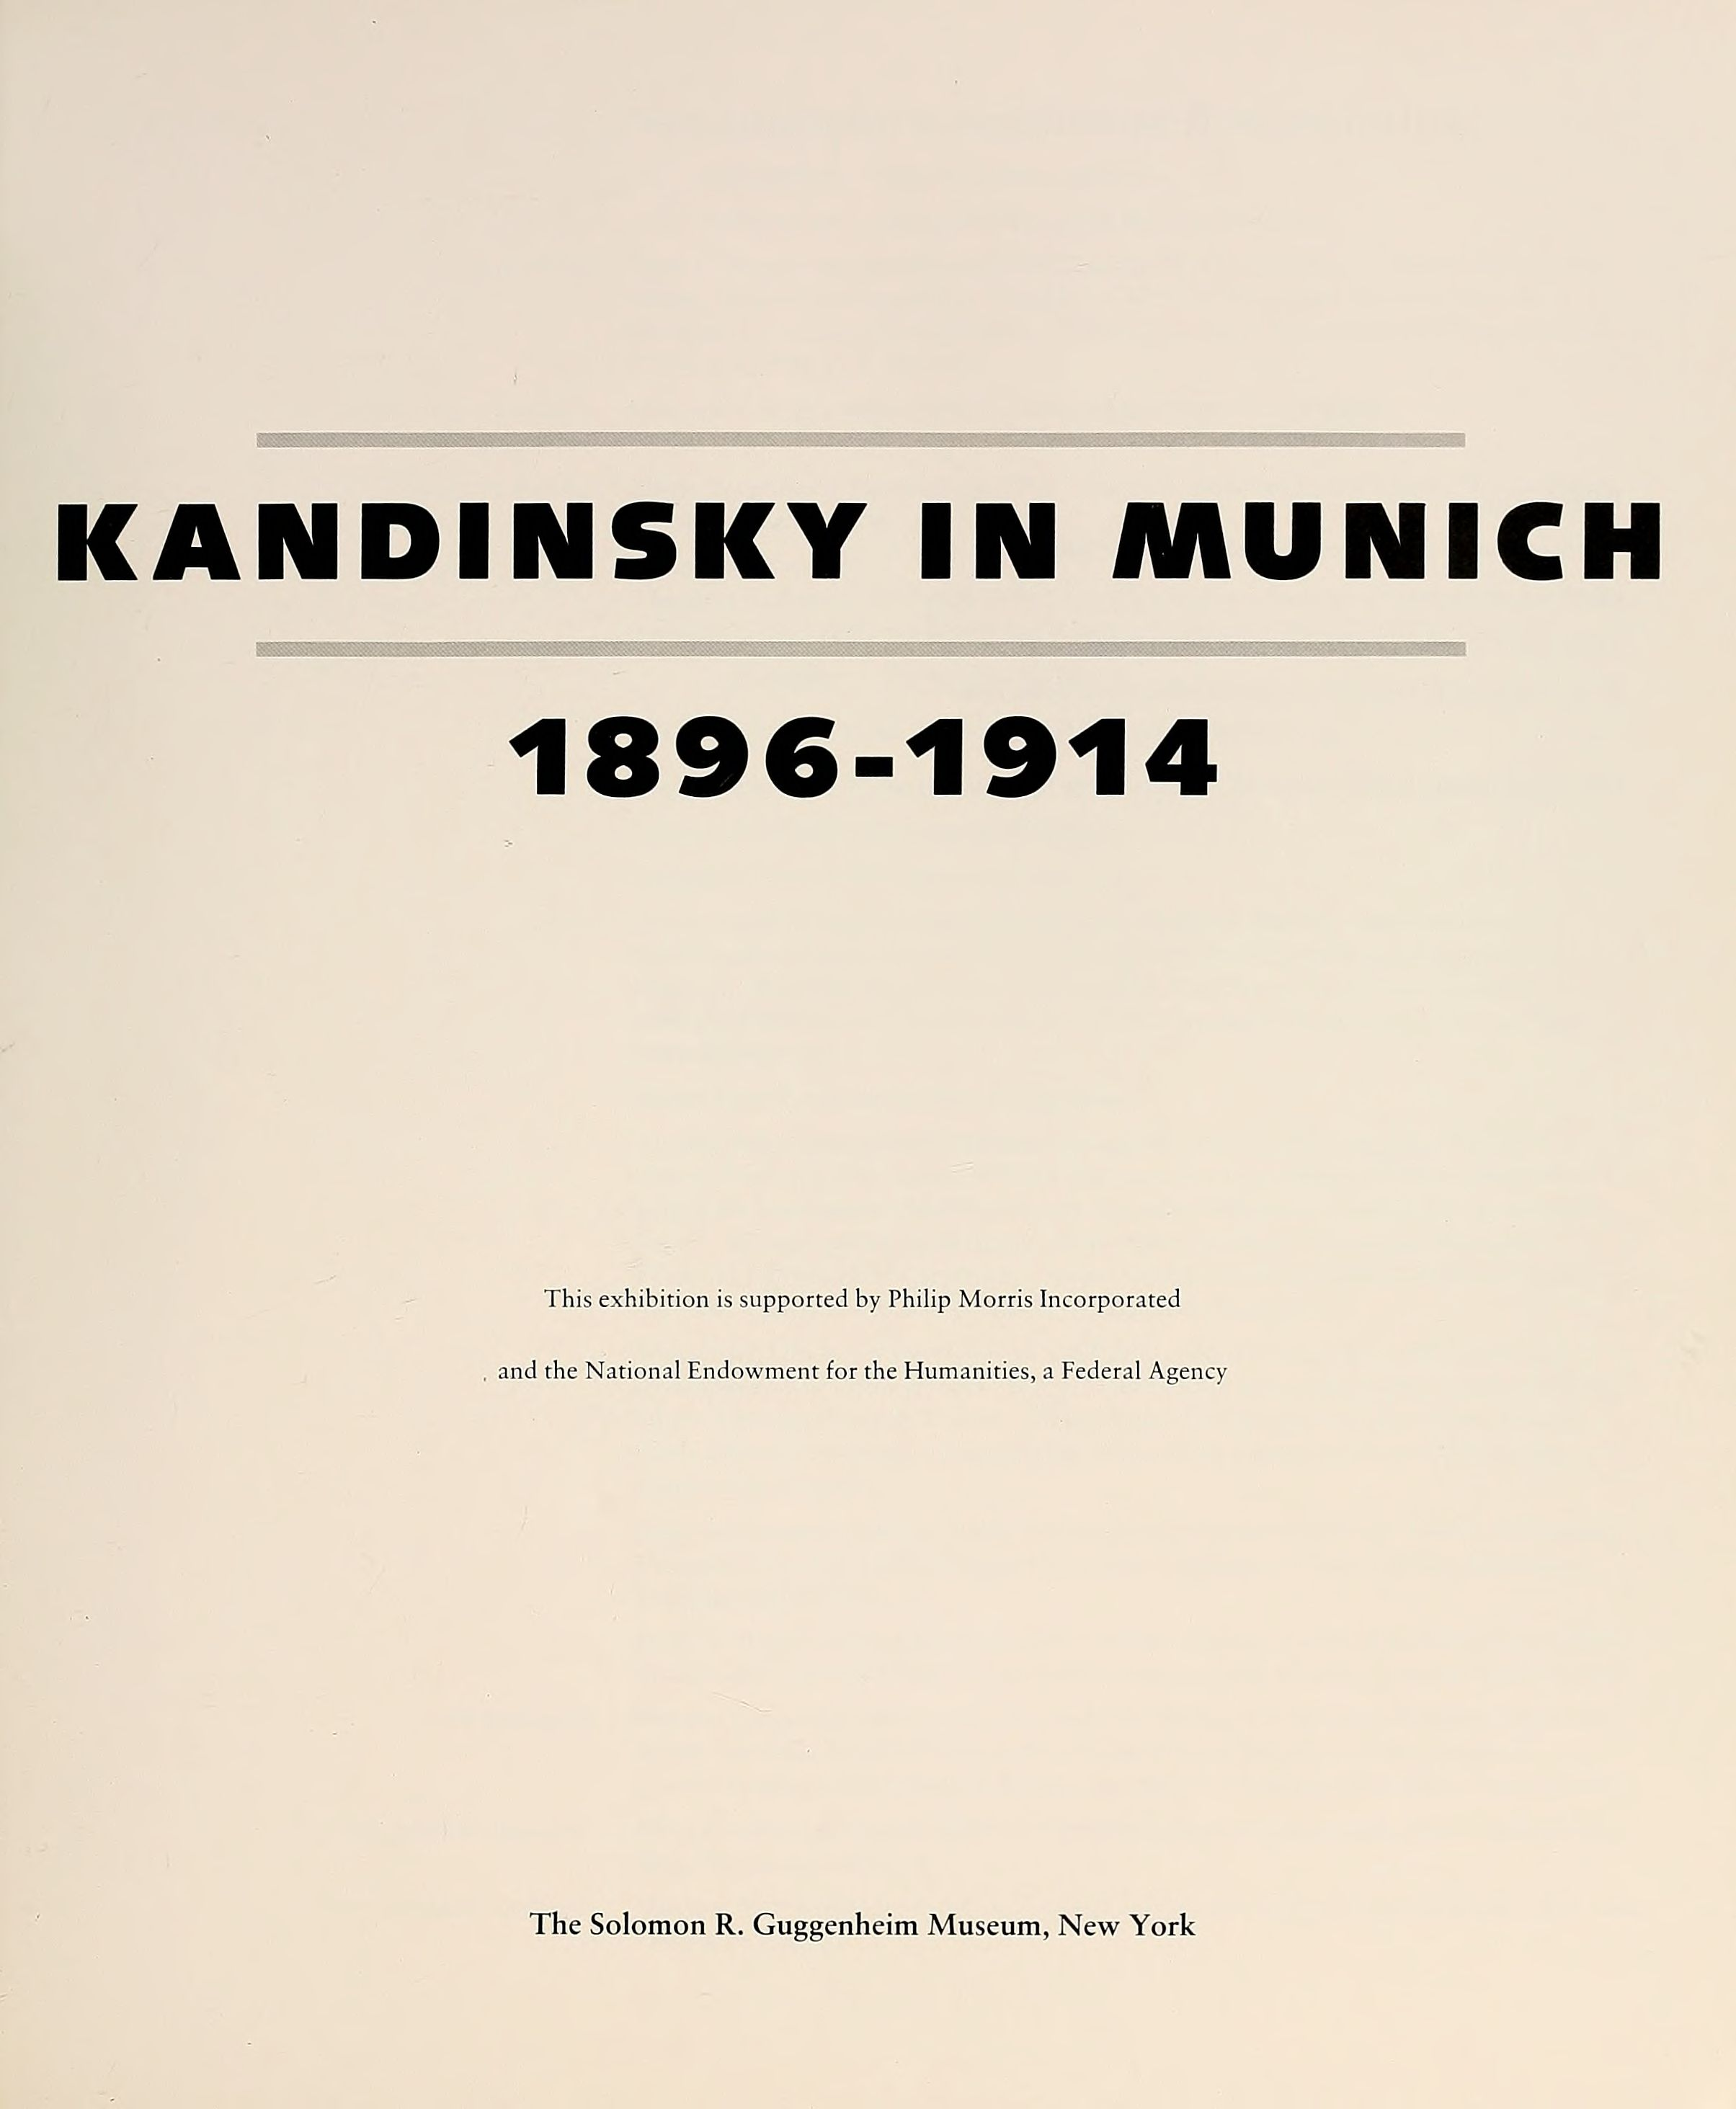 Kandinsky in Munich: 1896—1914 : Catalogue of the exhibition. — New York : The Solomon R. Guggenheim Museum, 1982